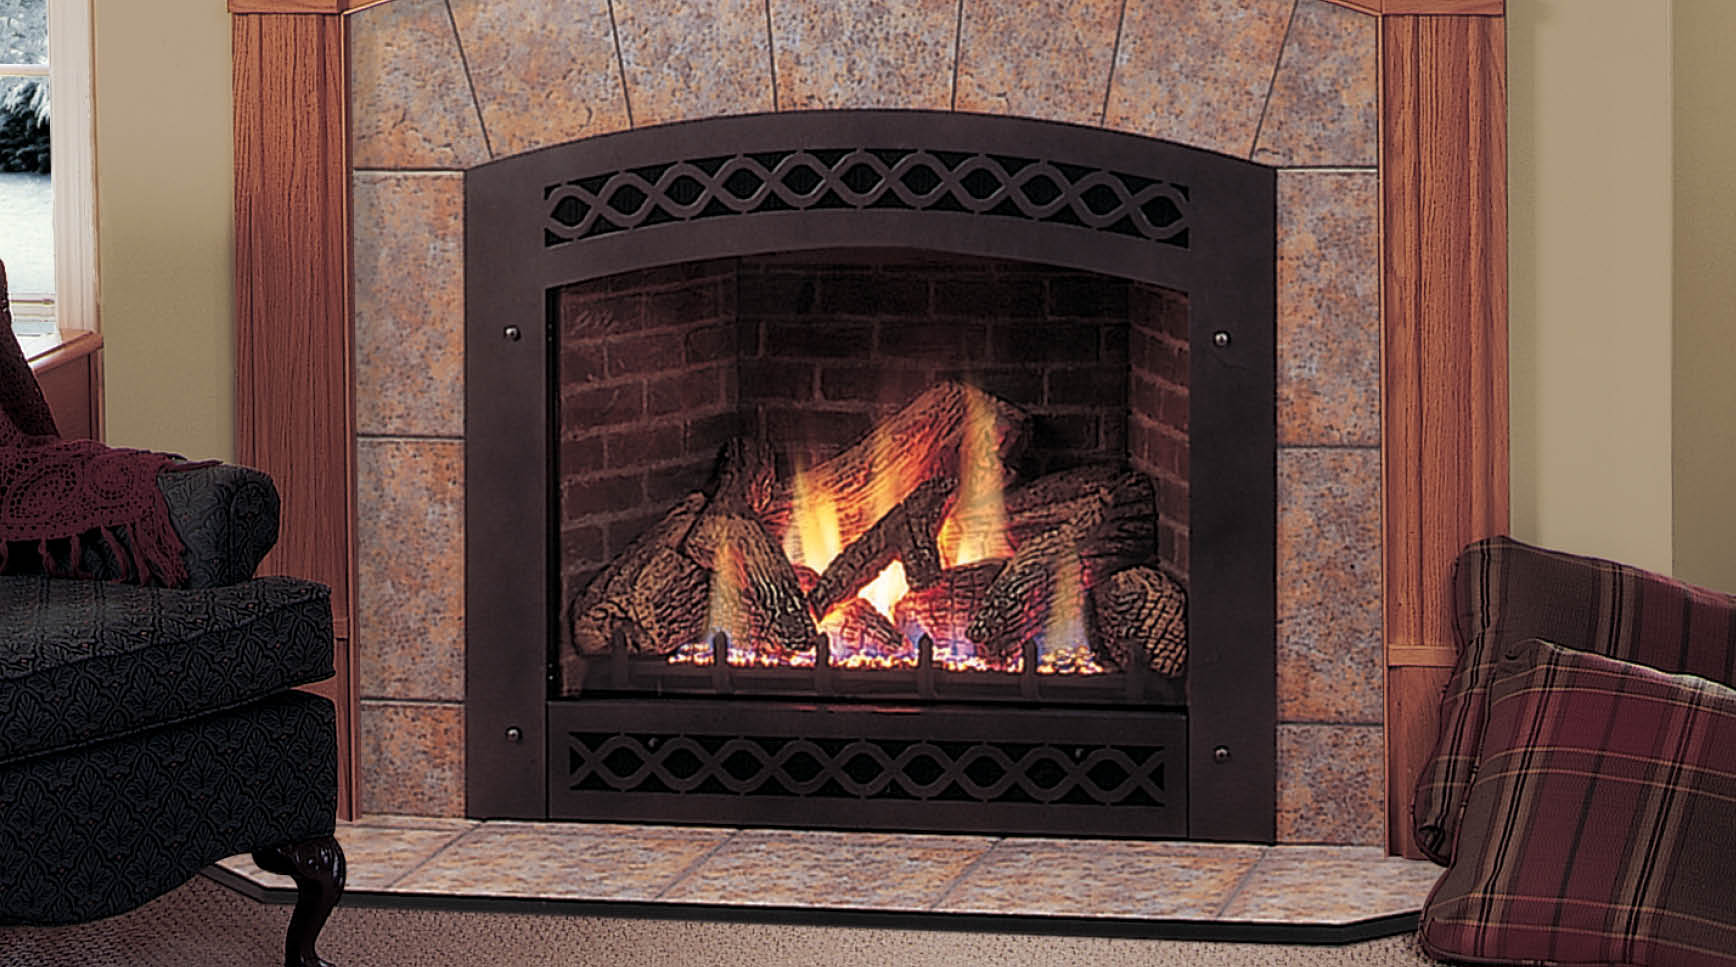 http://www.hearthandgrill.com/store/top-categories/woodburning-fireplaces/vf48h.html